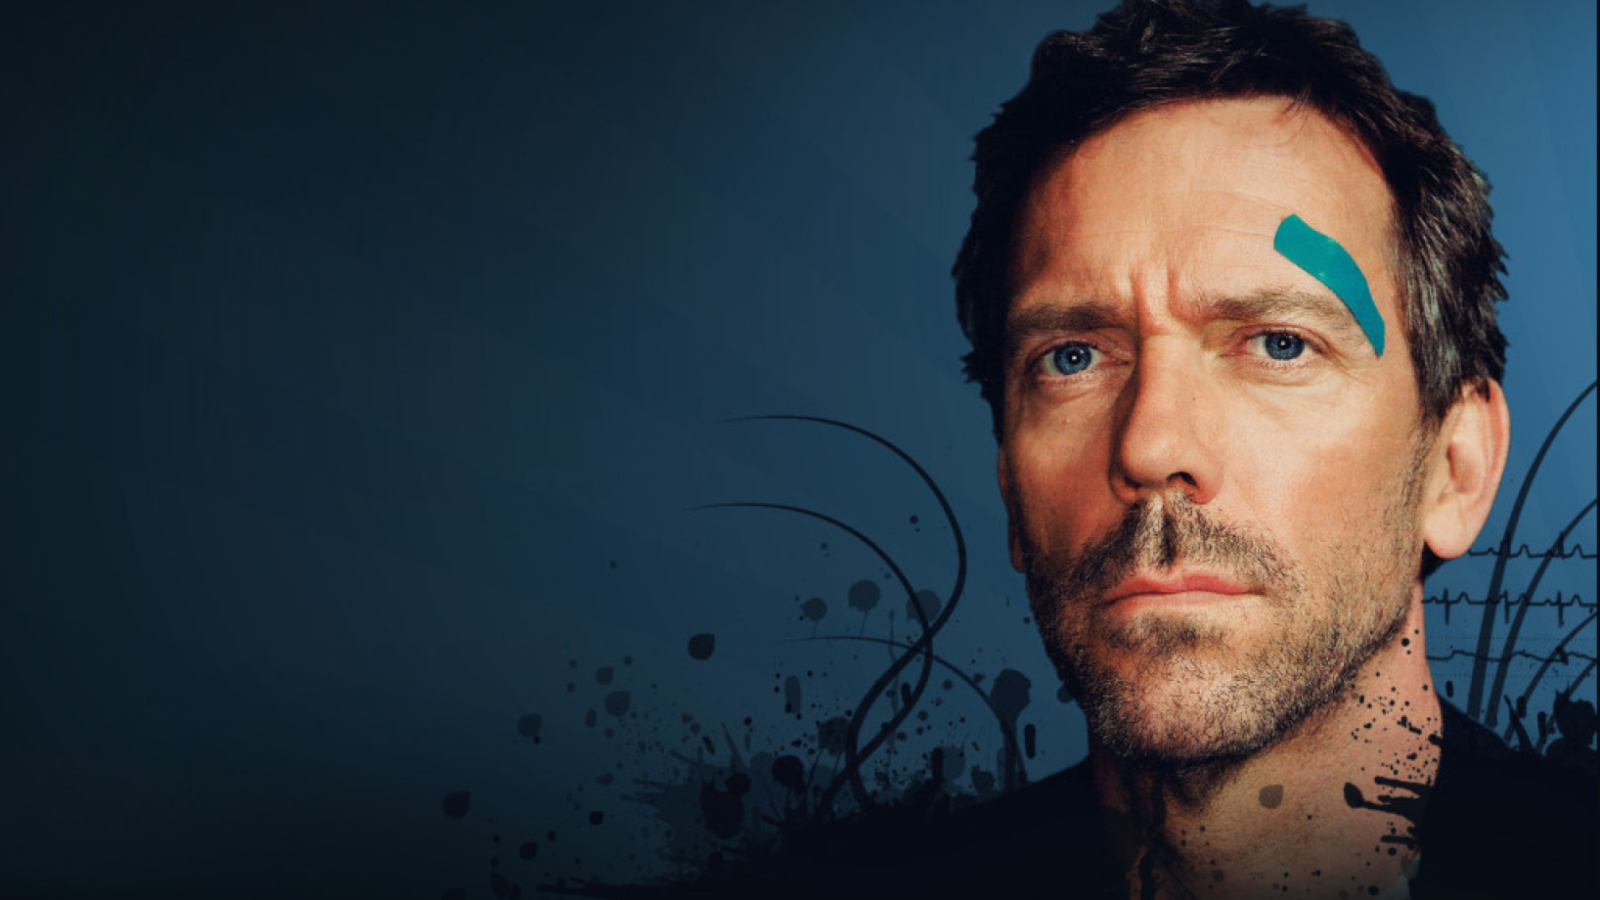 Dr House screenshot #1 1600x900